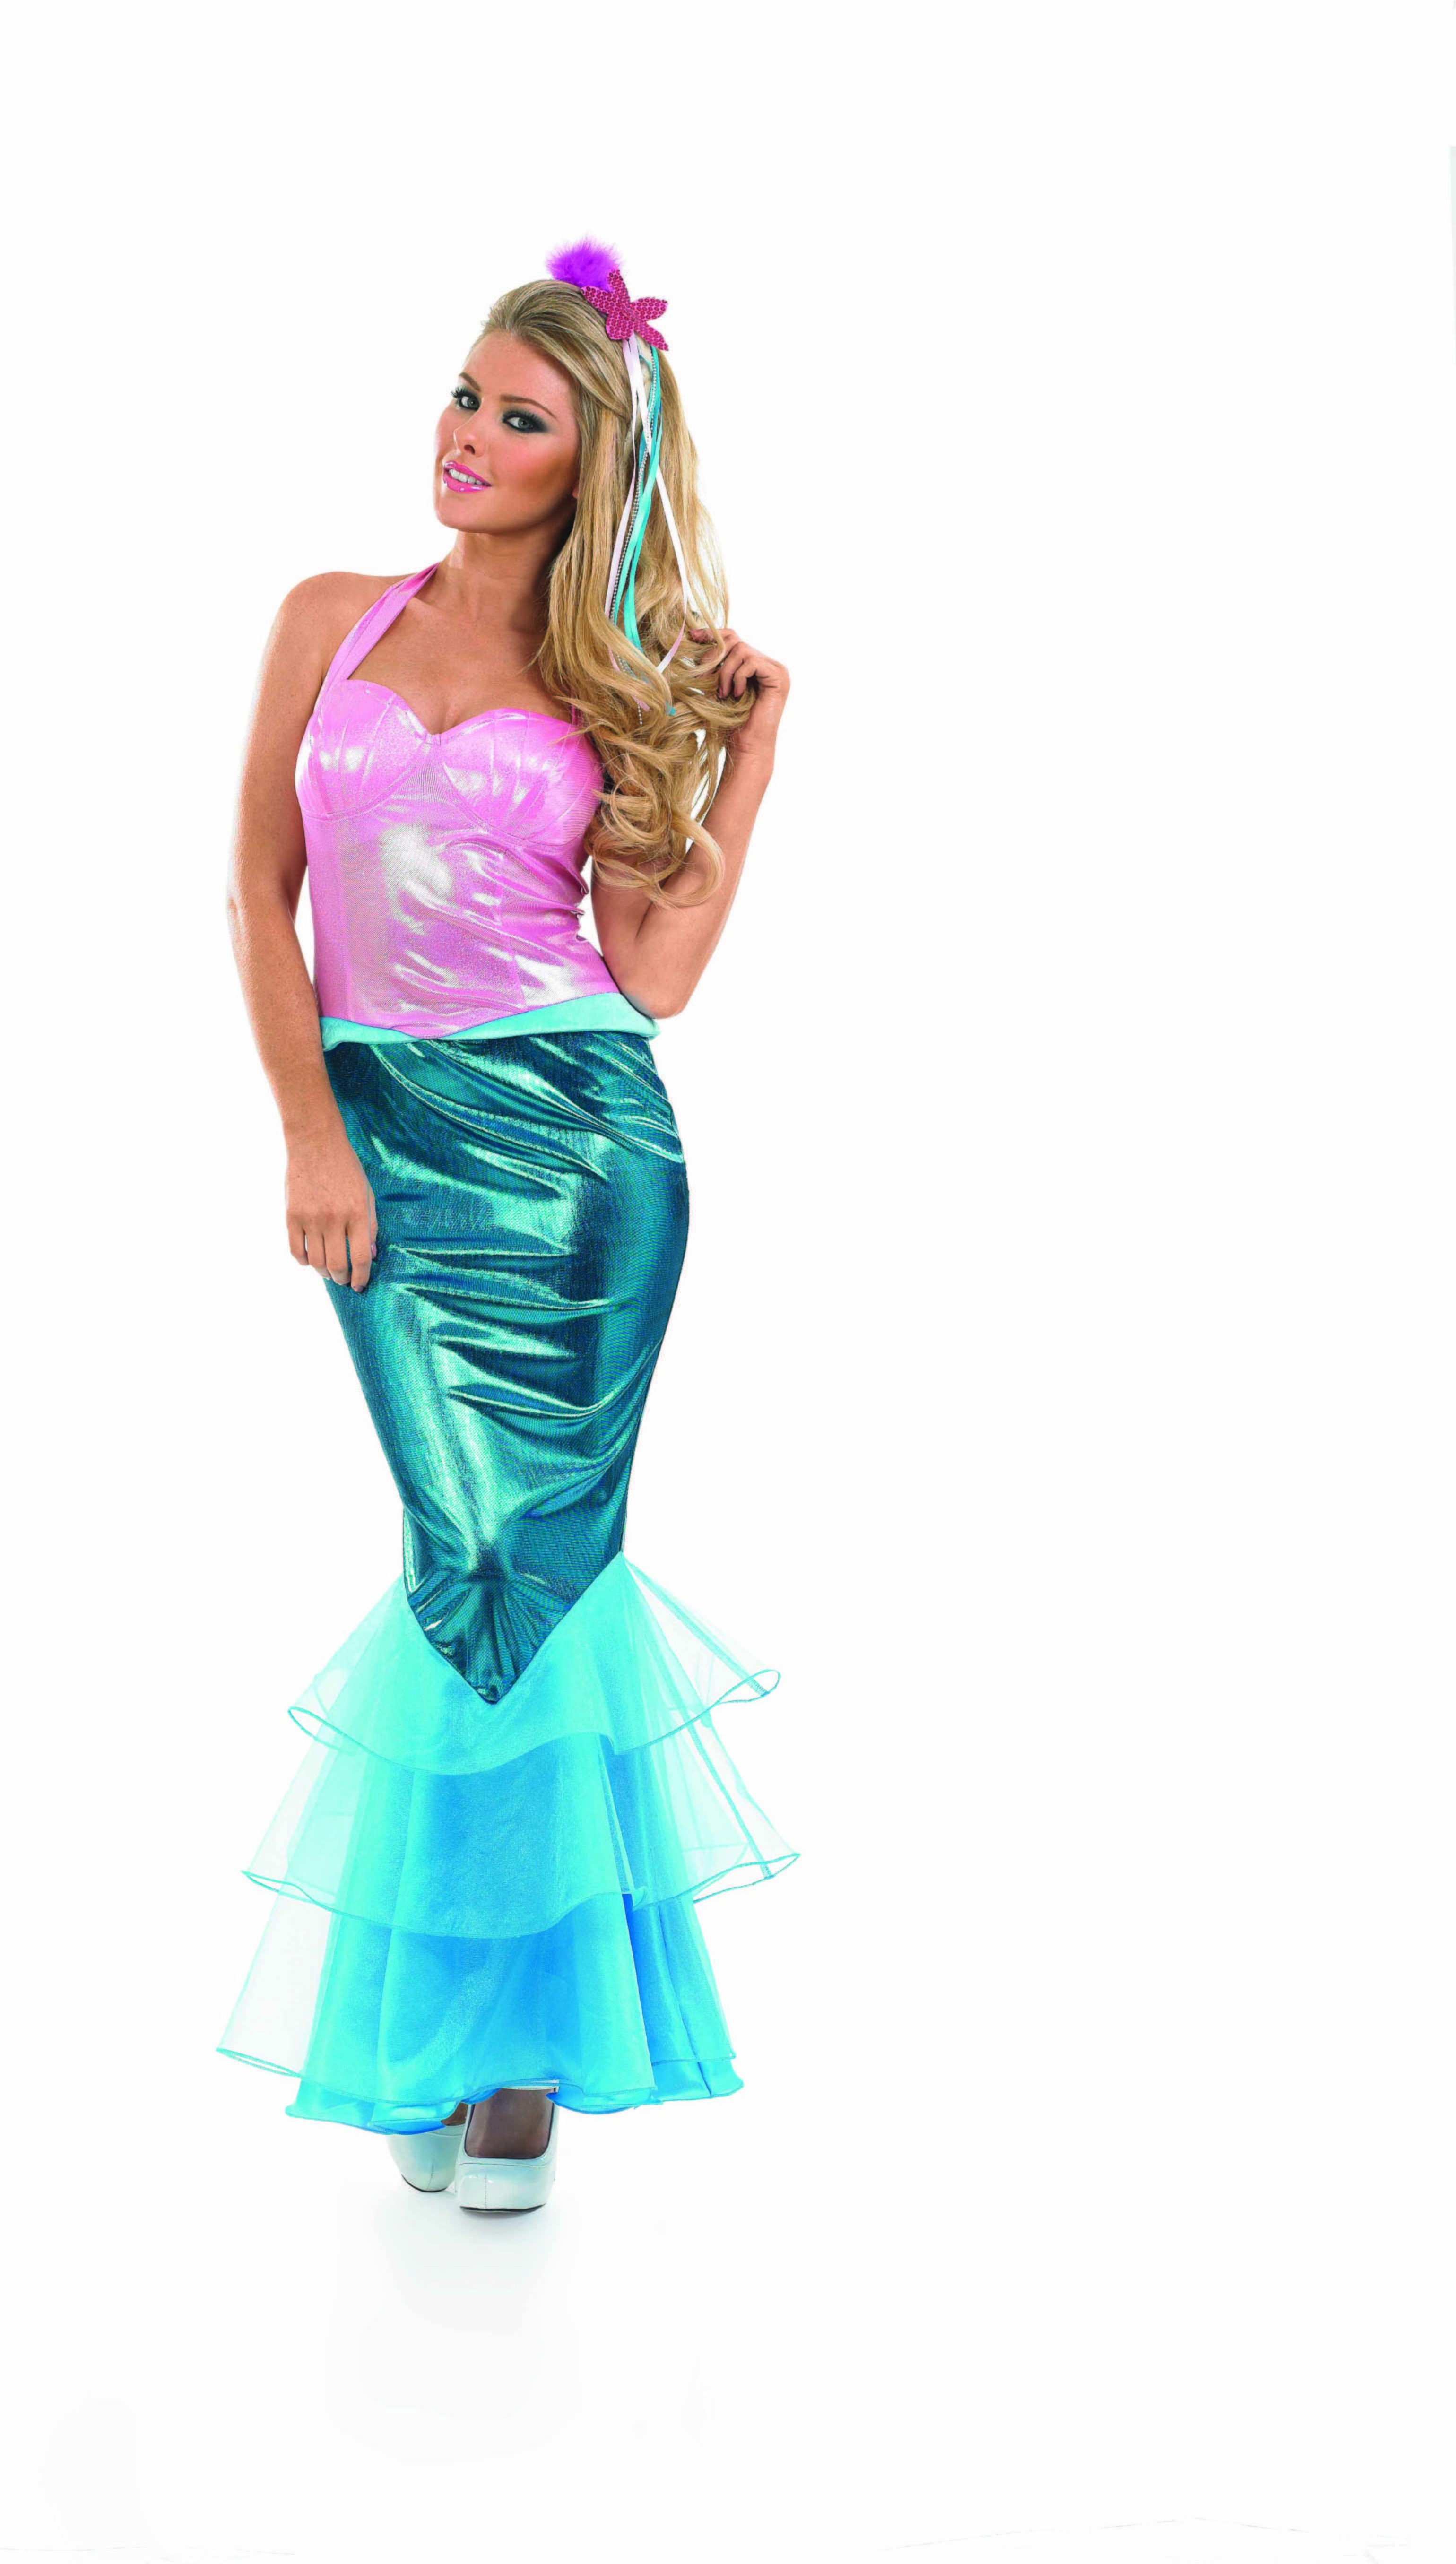 Ladies Mermaid Fairy Tales Outfit - (Pink, Turquoise)